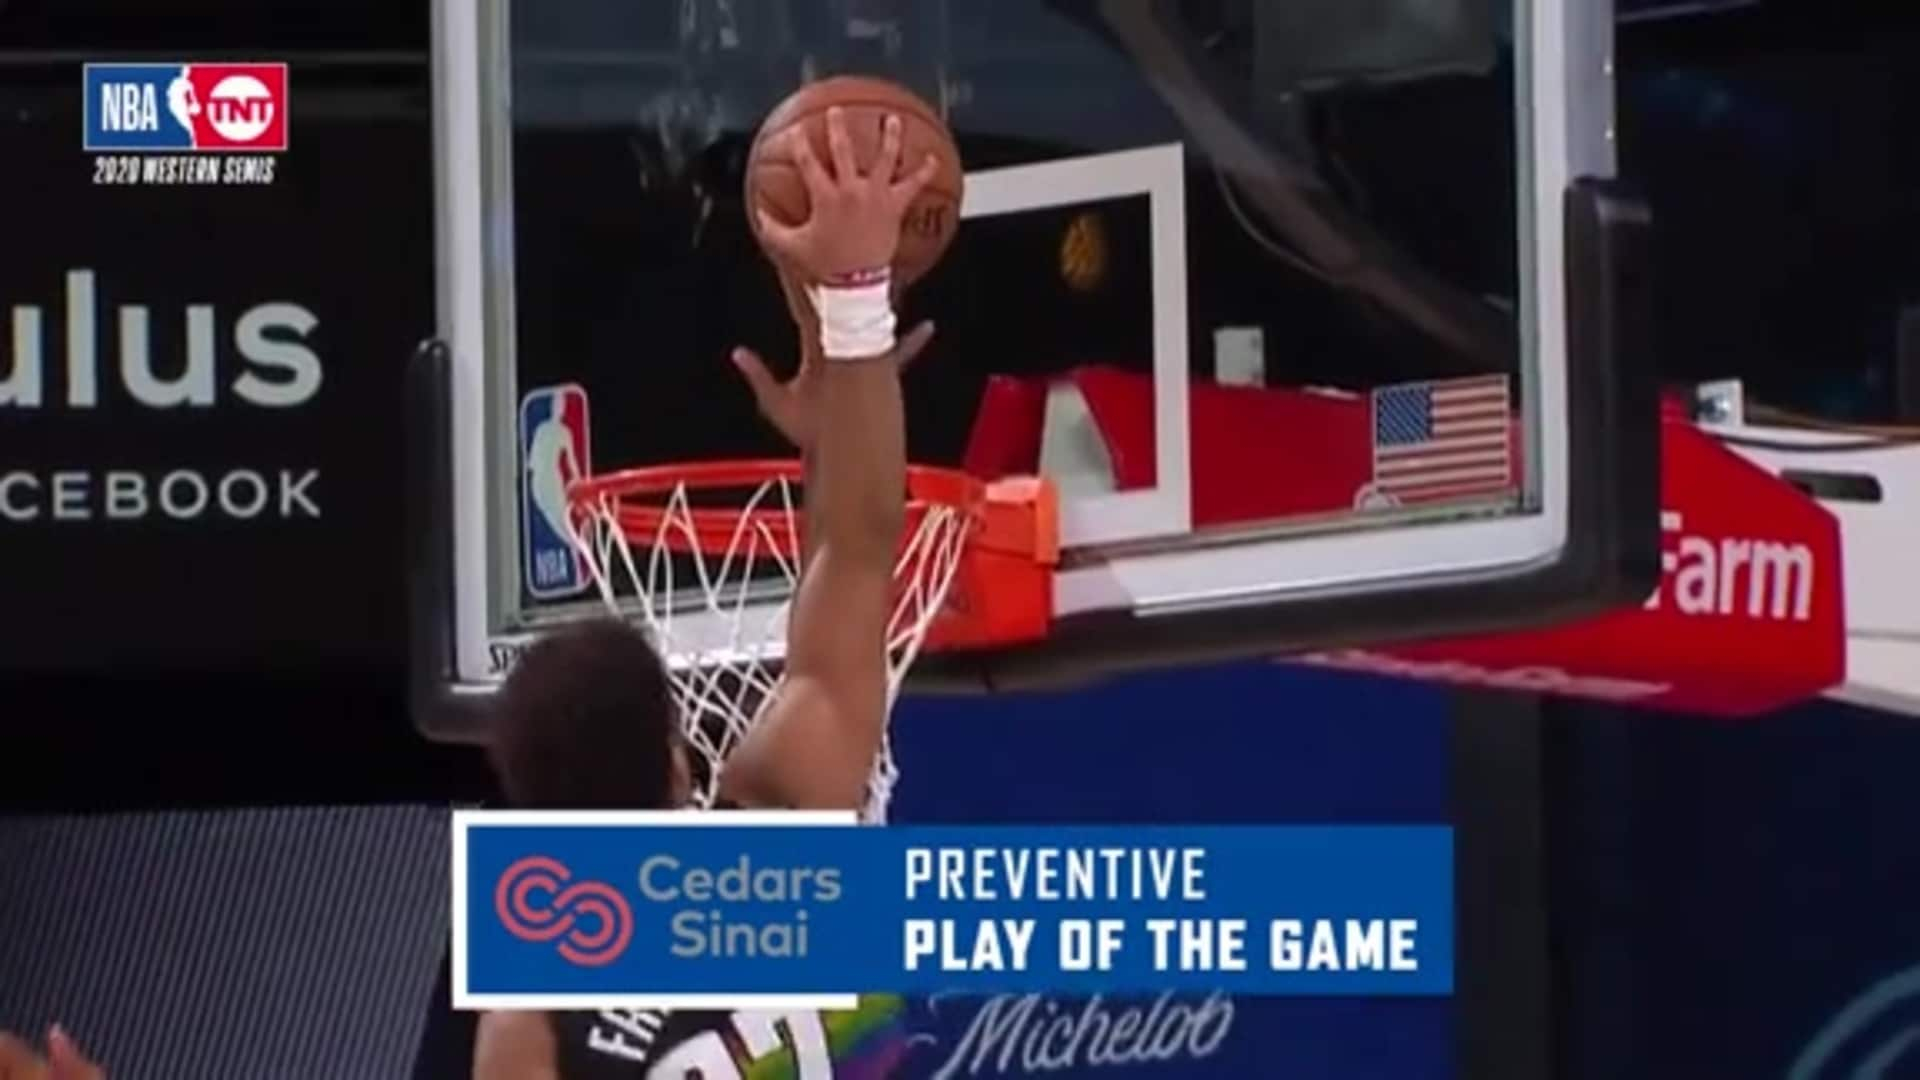 Cedars-Sinai Preventive Play of the Game | Clippers vs. Nuggets (09.07.20)